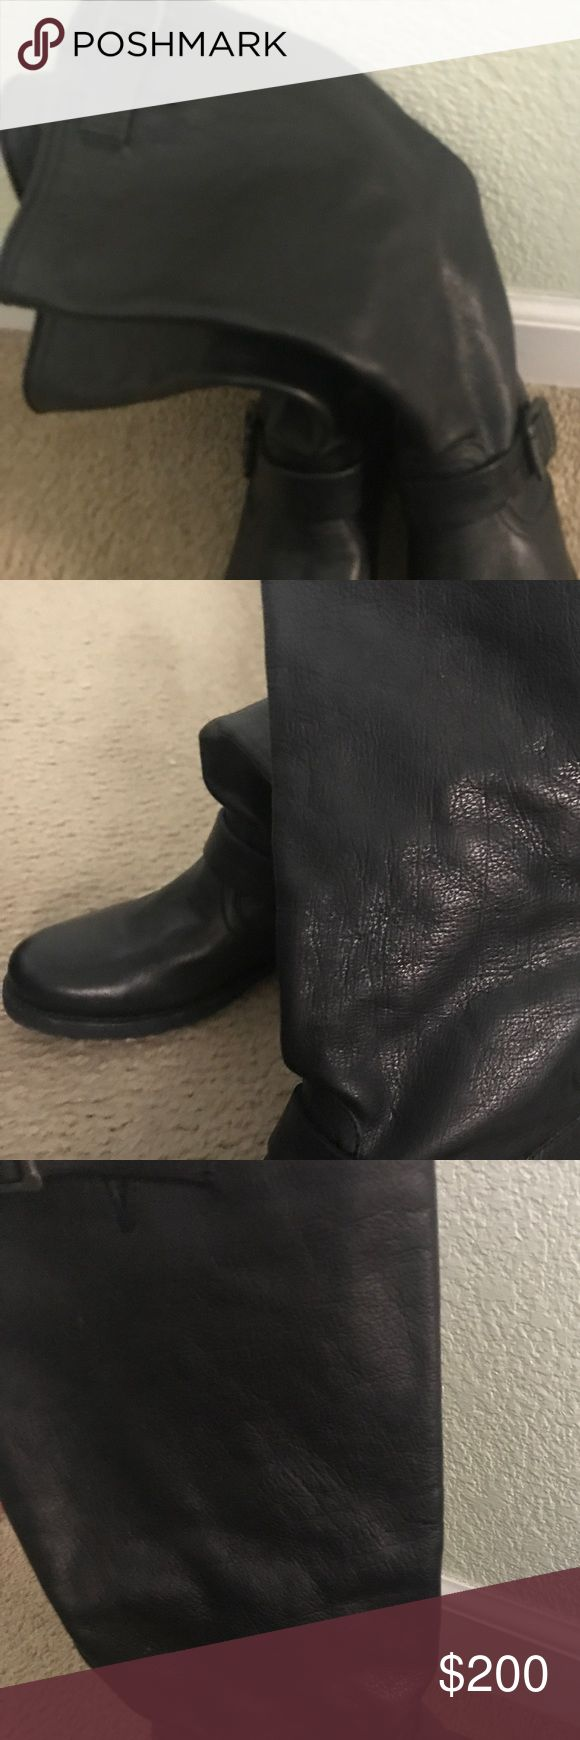 Frye Veronica Slouch size 8 Brand new frye Veronica Slouch boot. Used once but just not my style! Frye Shoes Combat & Moto Boots